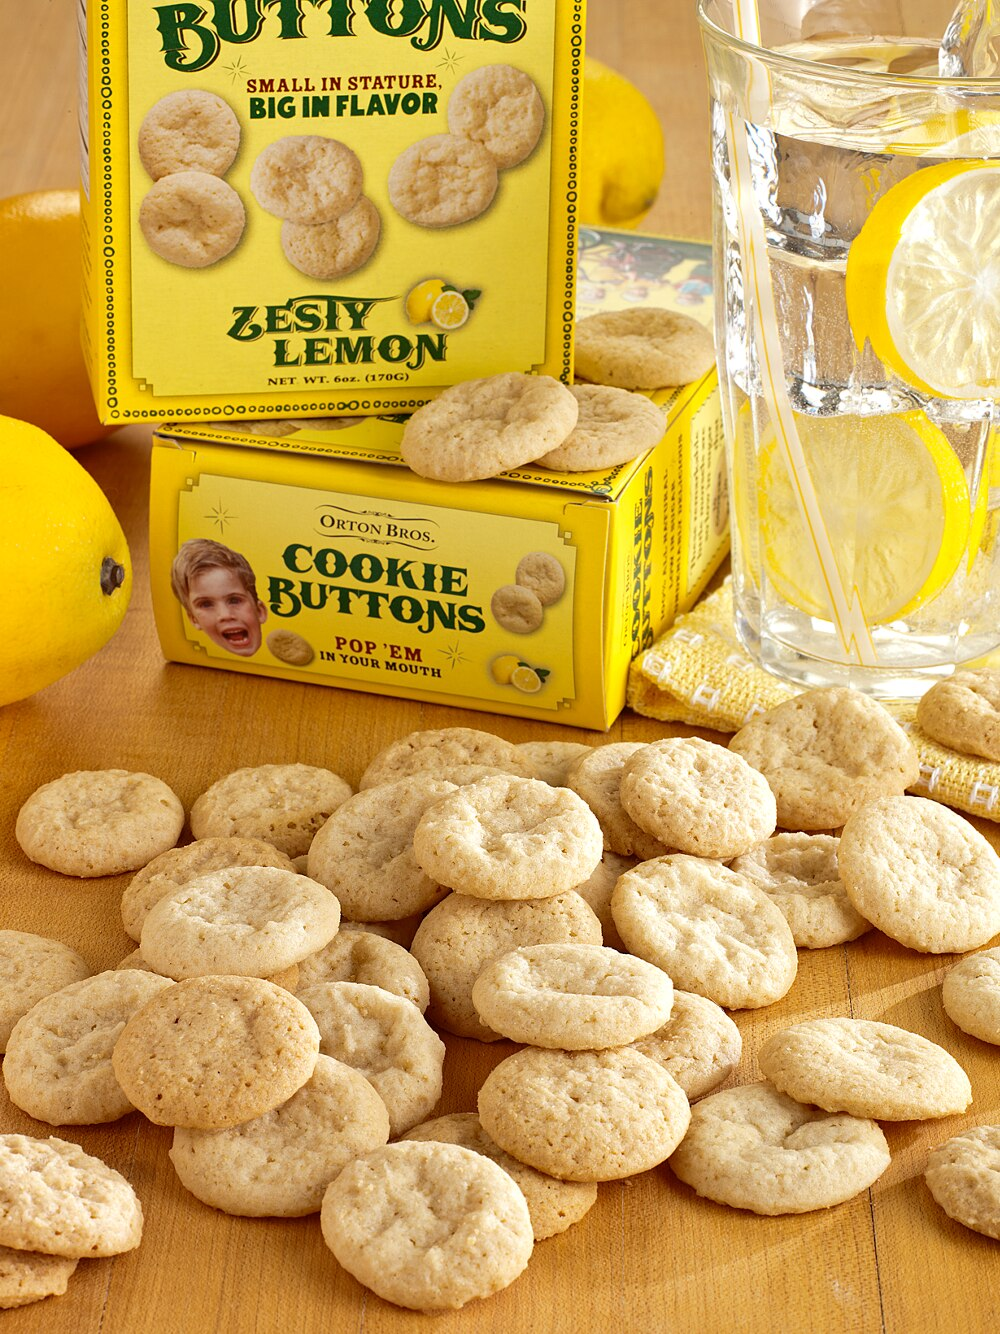 Orton Brothers Cookie Buttons, 3 Boxes